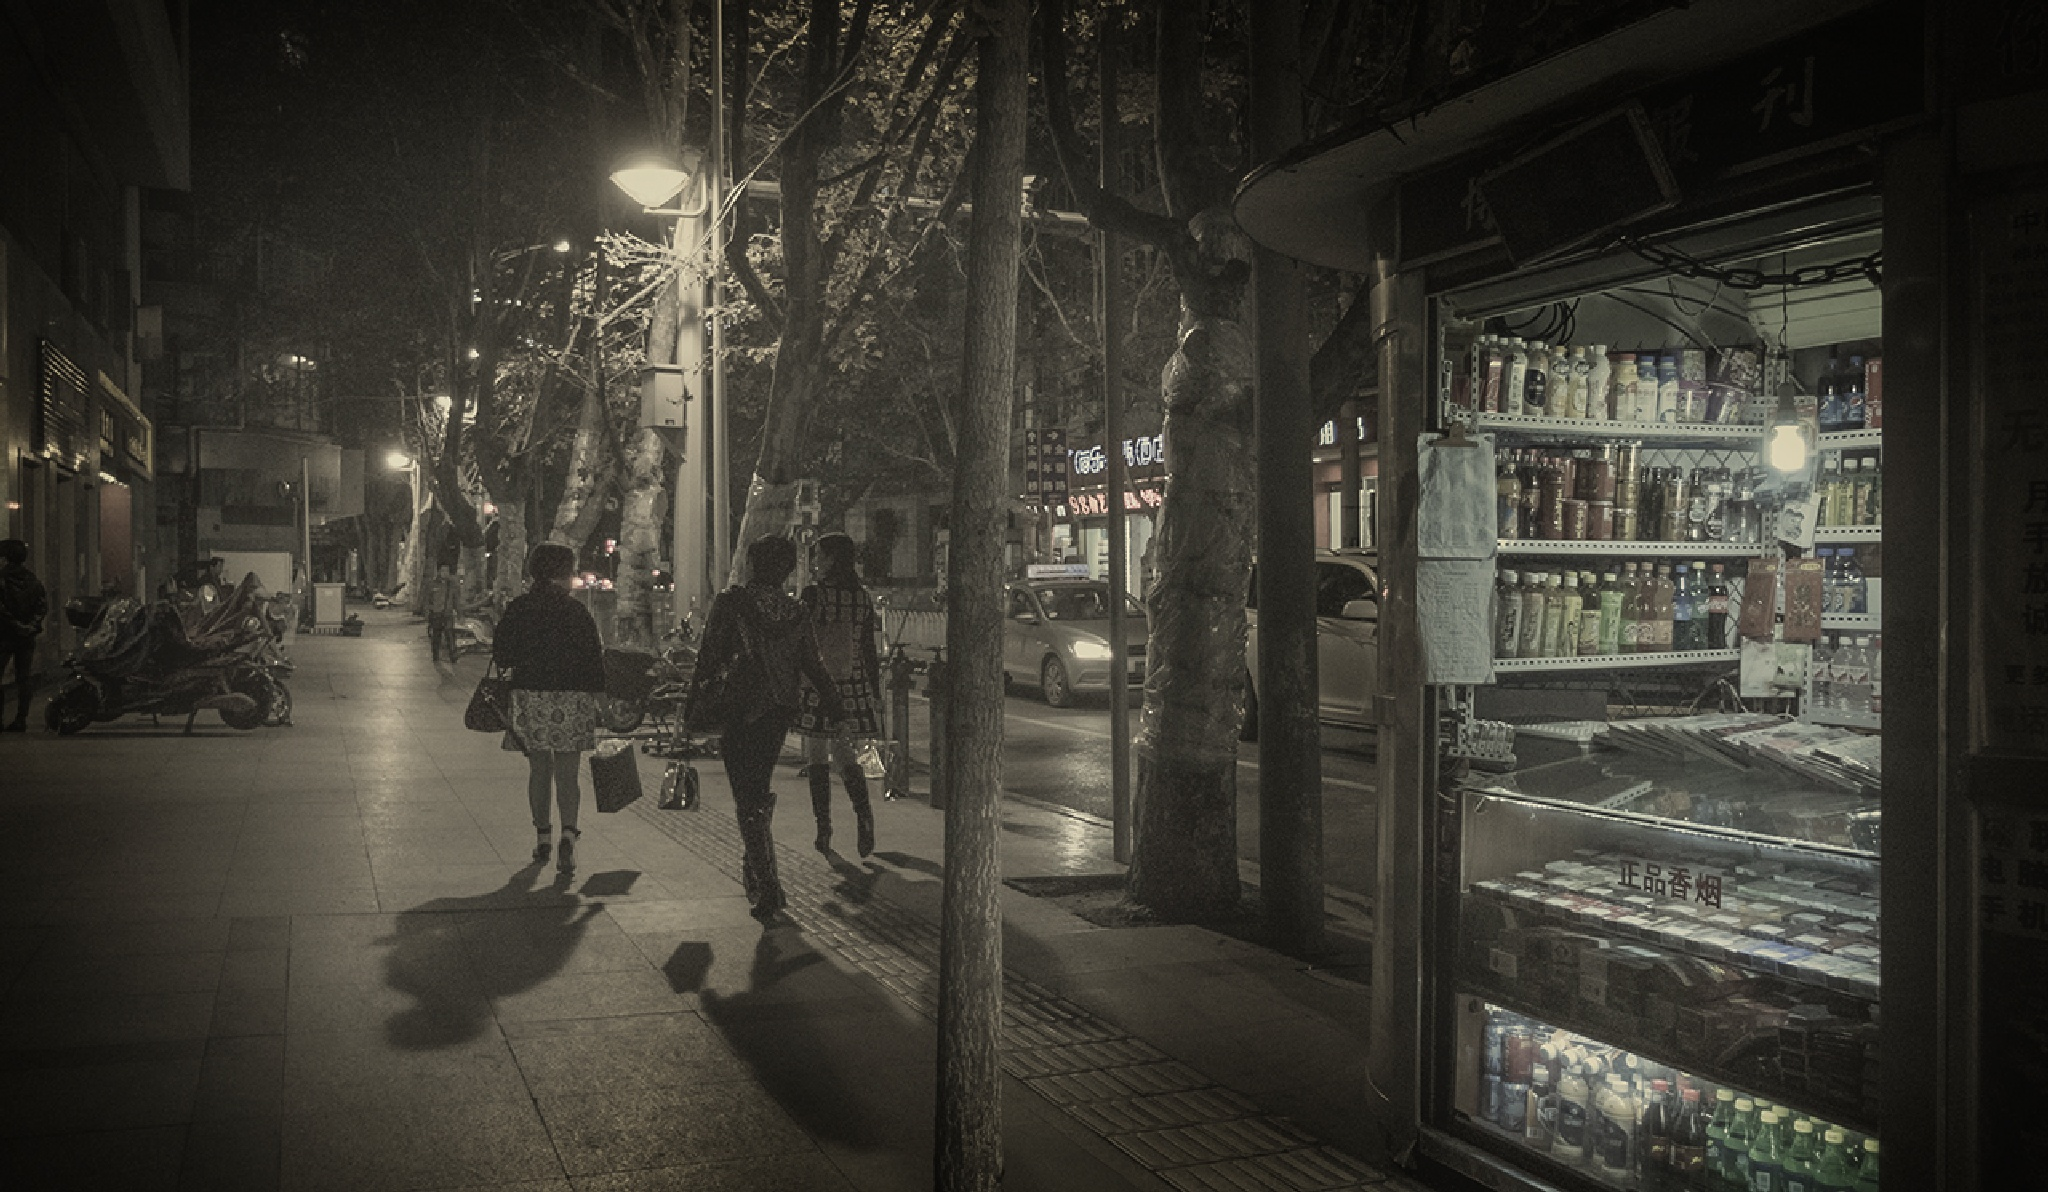 Streets of Kunming by kampuazhang